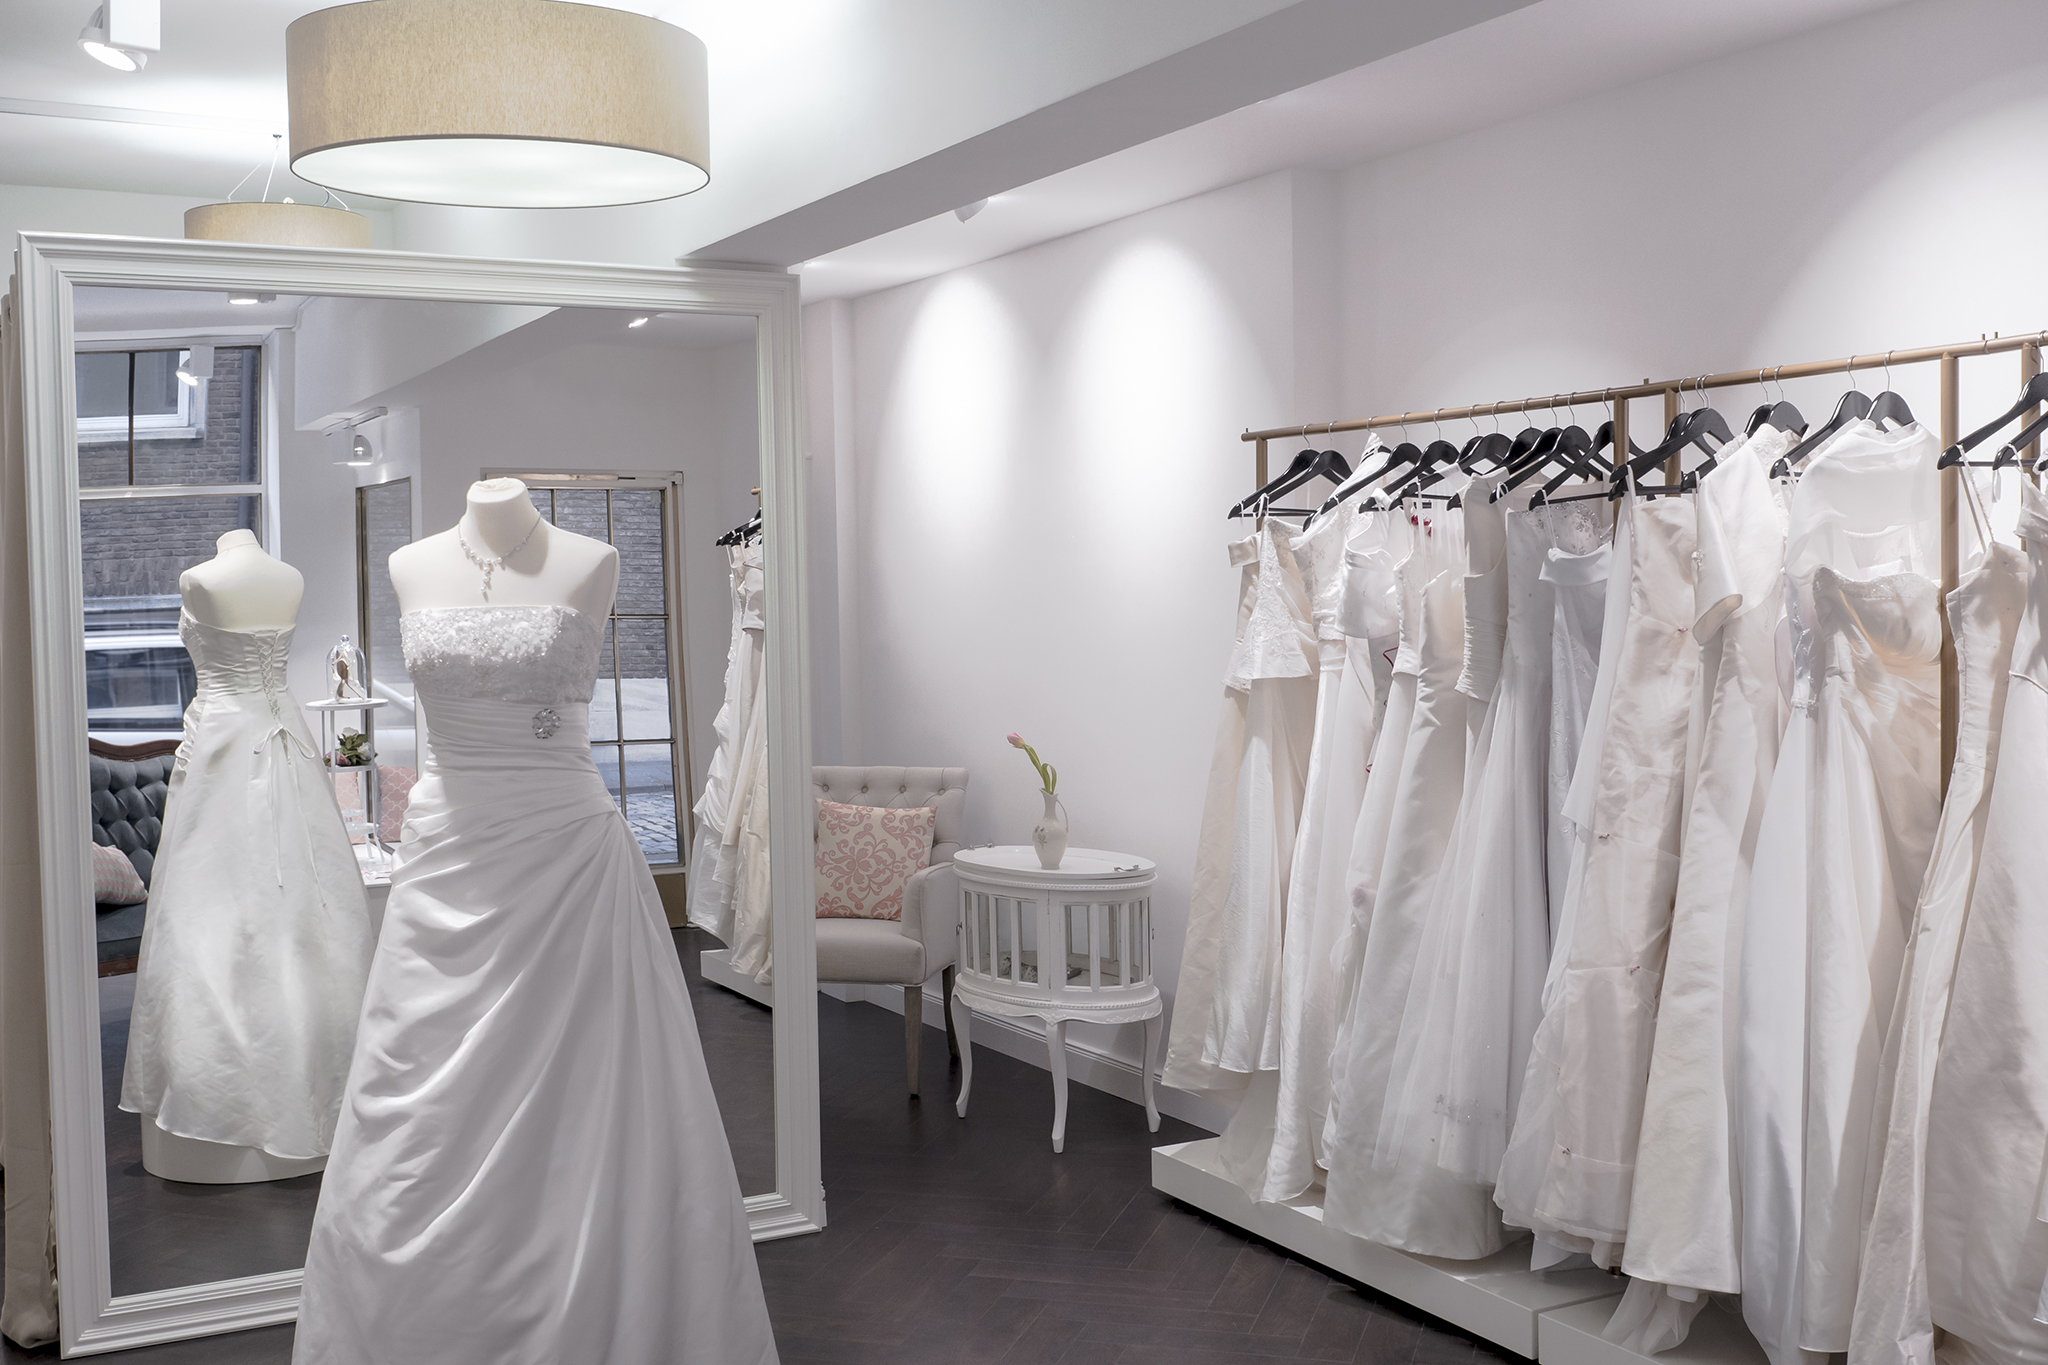 Best bridal shops in nyc including lovely bride and kleinfeld for Wedding dress boutiques in nyc